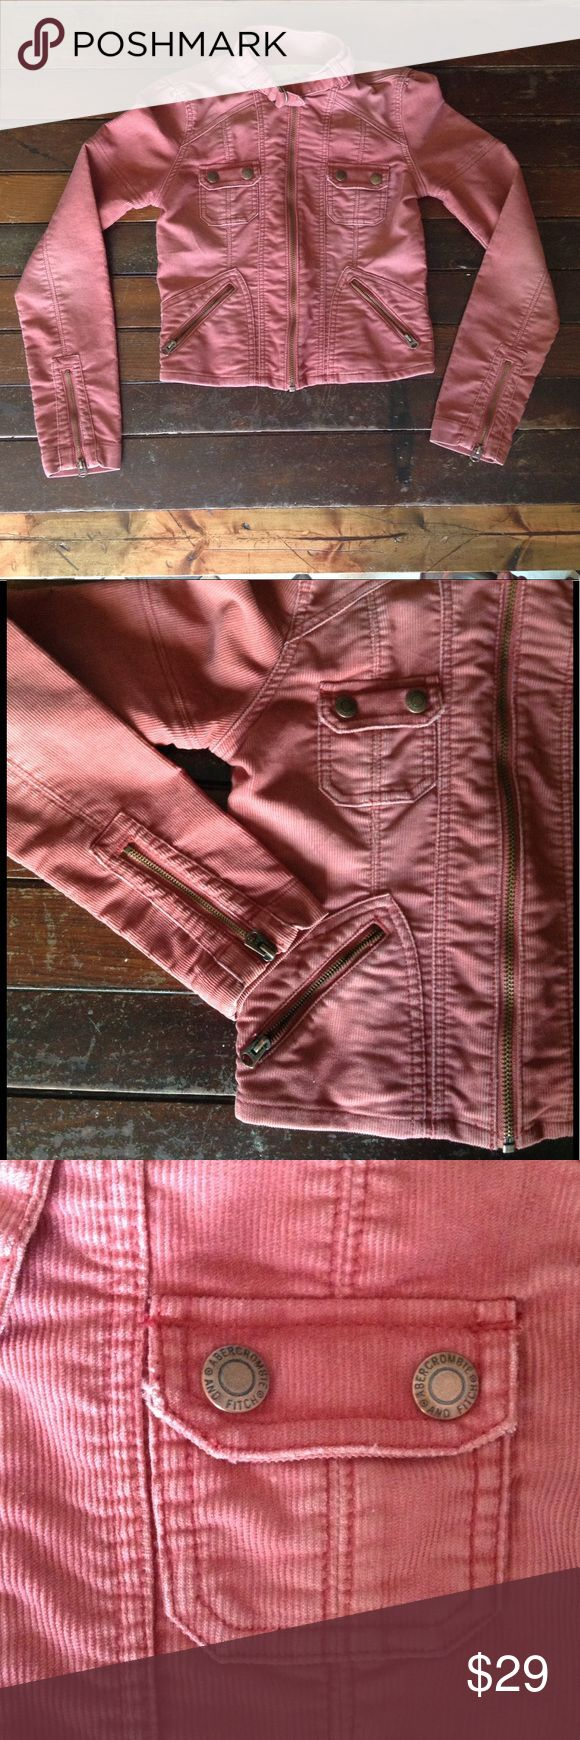 Abercrombie and Fitch Jacket Abercrombie and Fitch Dark blush corduroy zip up jacket Abercrombie & Fitch Jackets & Coats